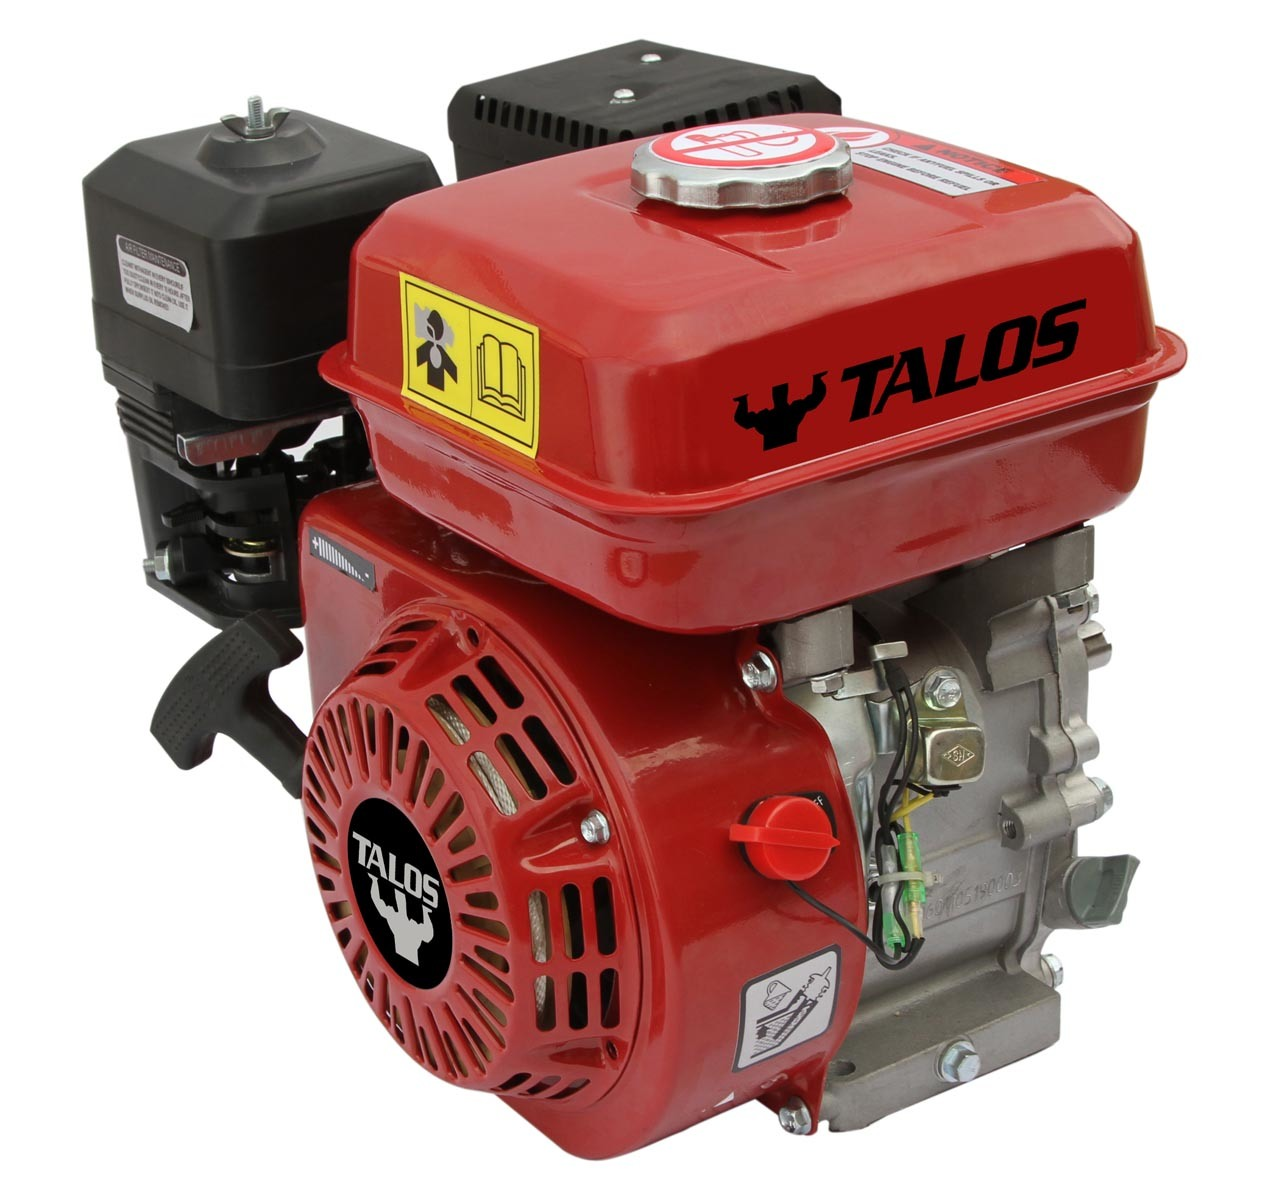 4-Stroke Horizontal 5.5HP Gasoline Engine (T160)